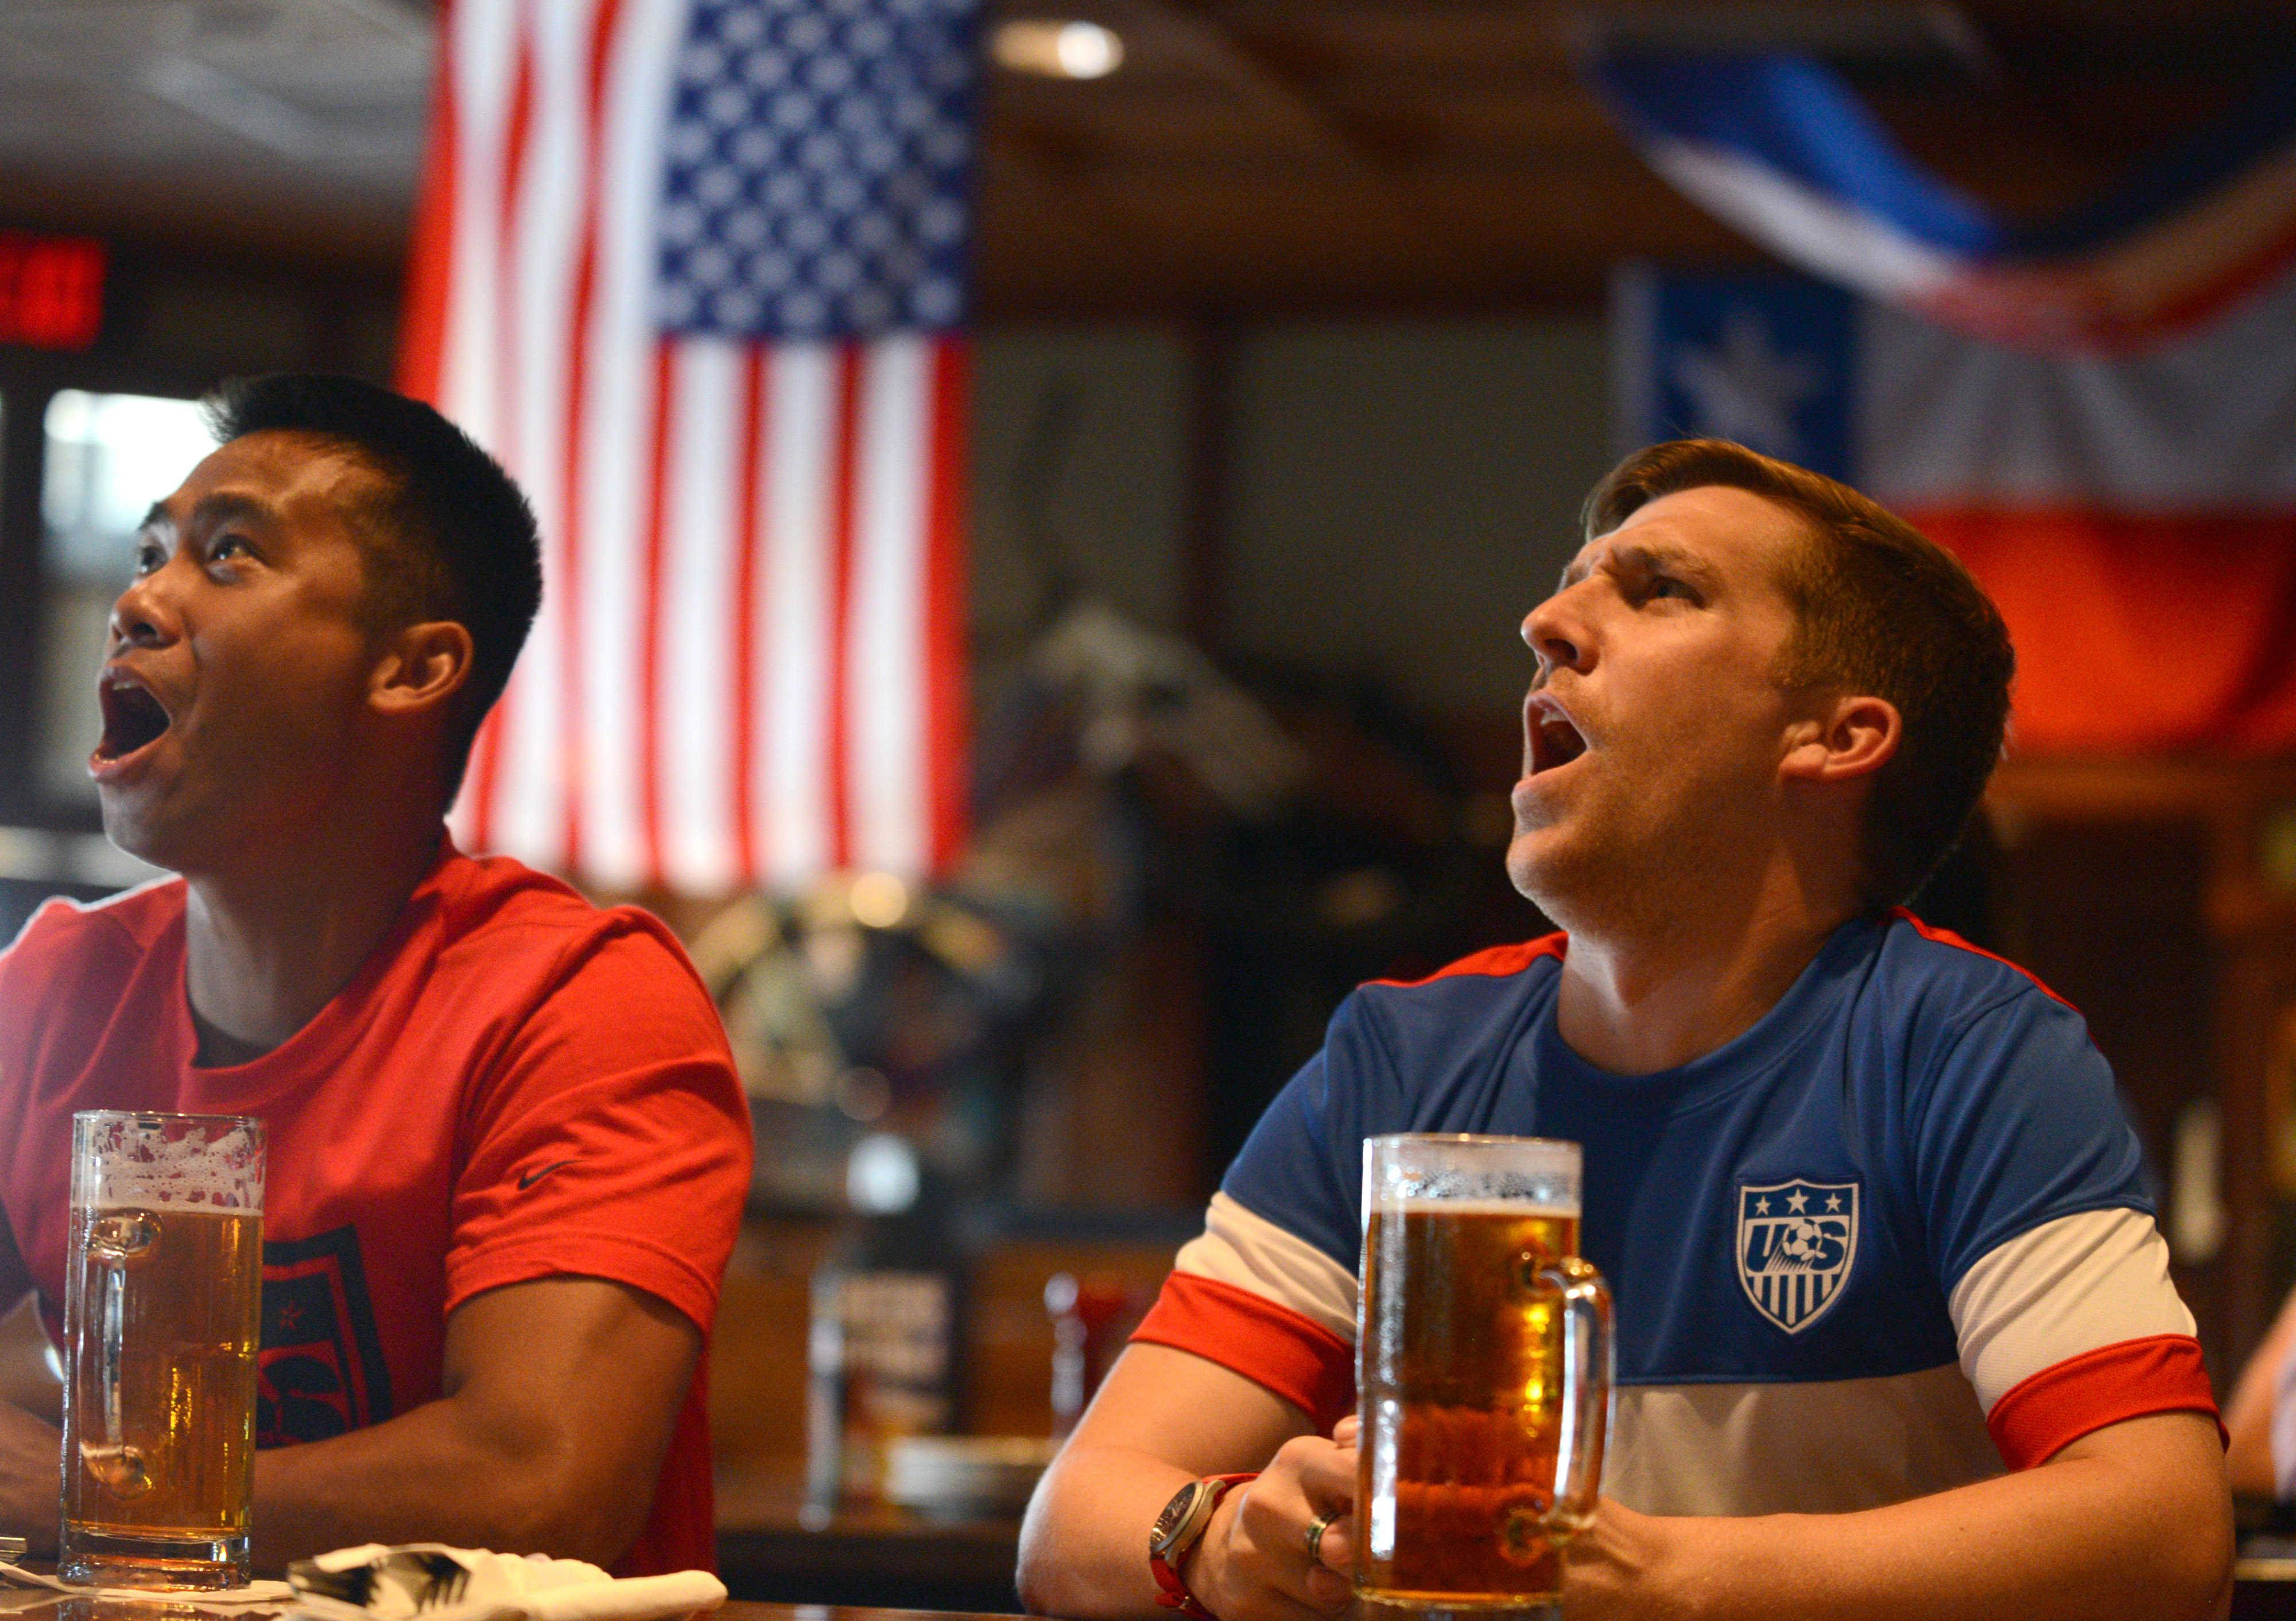 Jonathan Acosta, left, of Addison, and Steve Jenkins, right, of Hoffman Estates fear the news of injured American player Clint Dempsey.